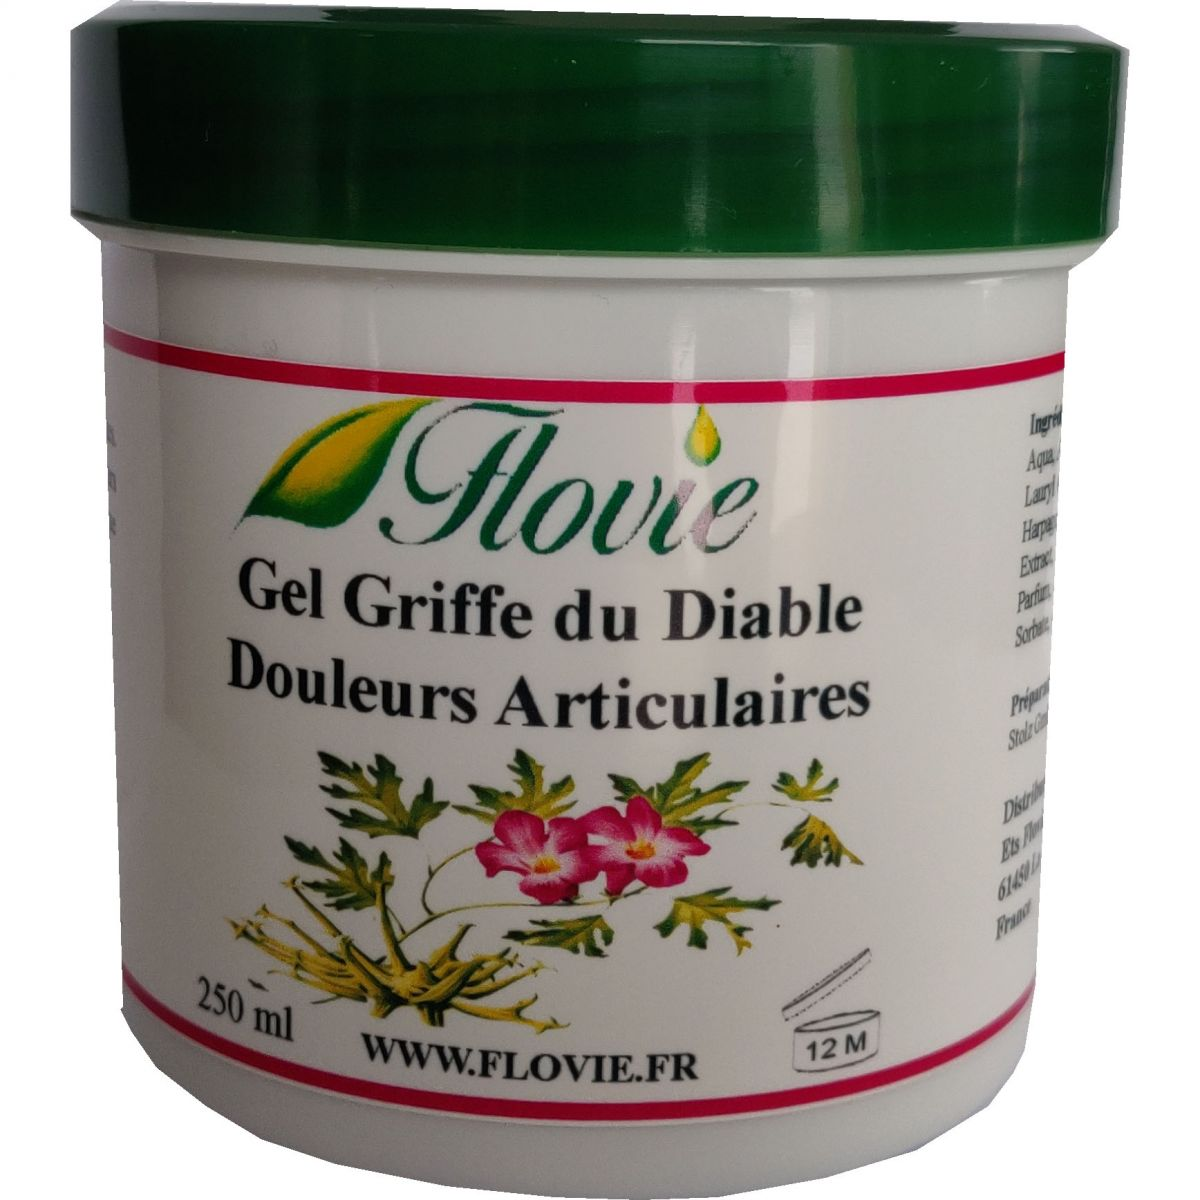 Gel à base de griffe du diable